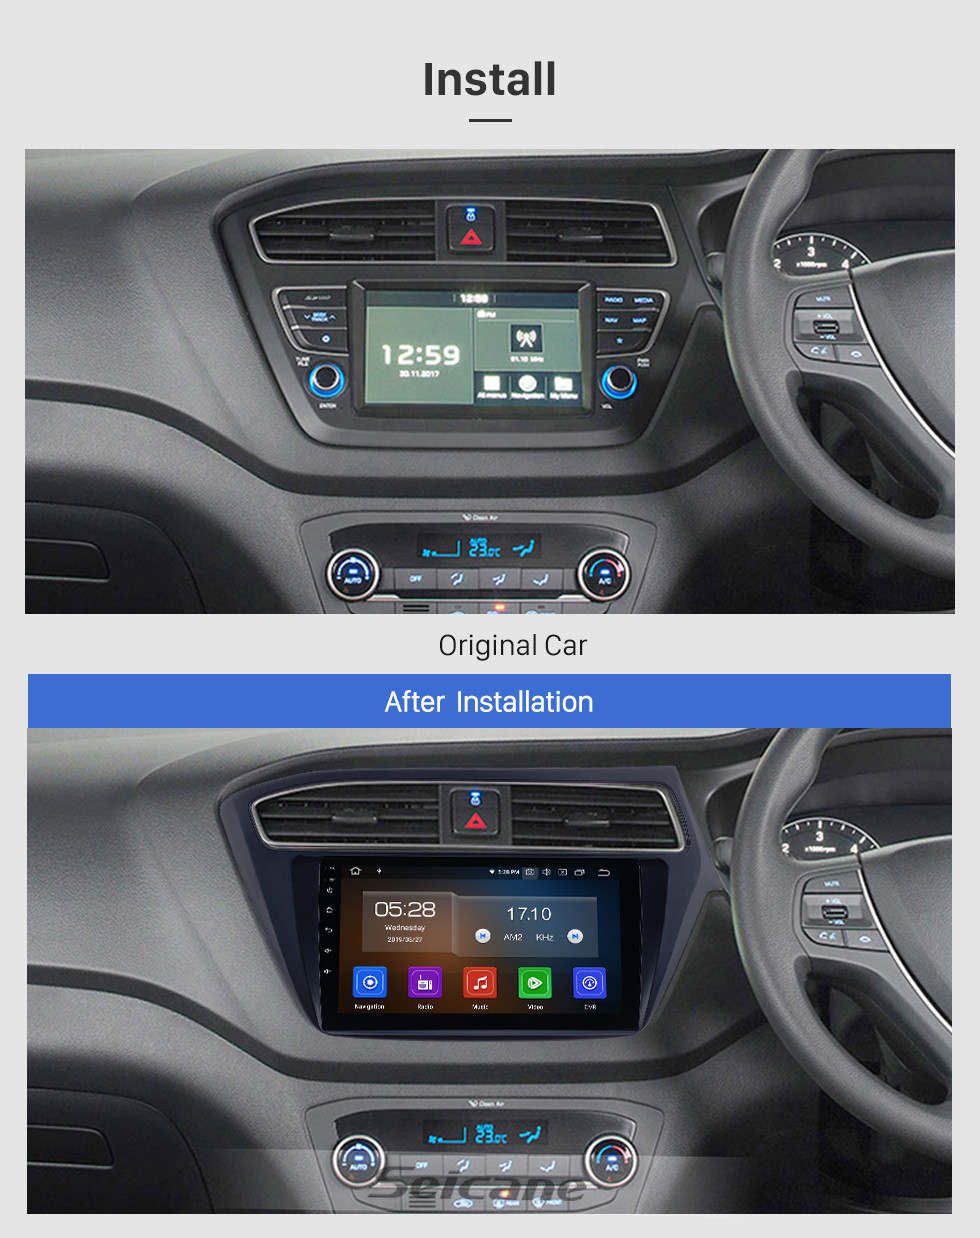 Seicane 9 inch Android 10.0 Radio for 2018-2019 Hyundai i20 RHD with GPS Navigation HD Touchscreen Bluetooth Carplay Audio System support Rearview camera TPMS